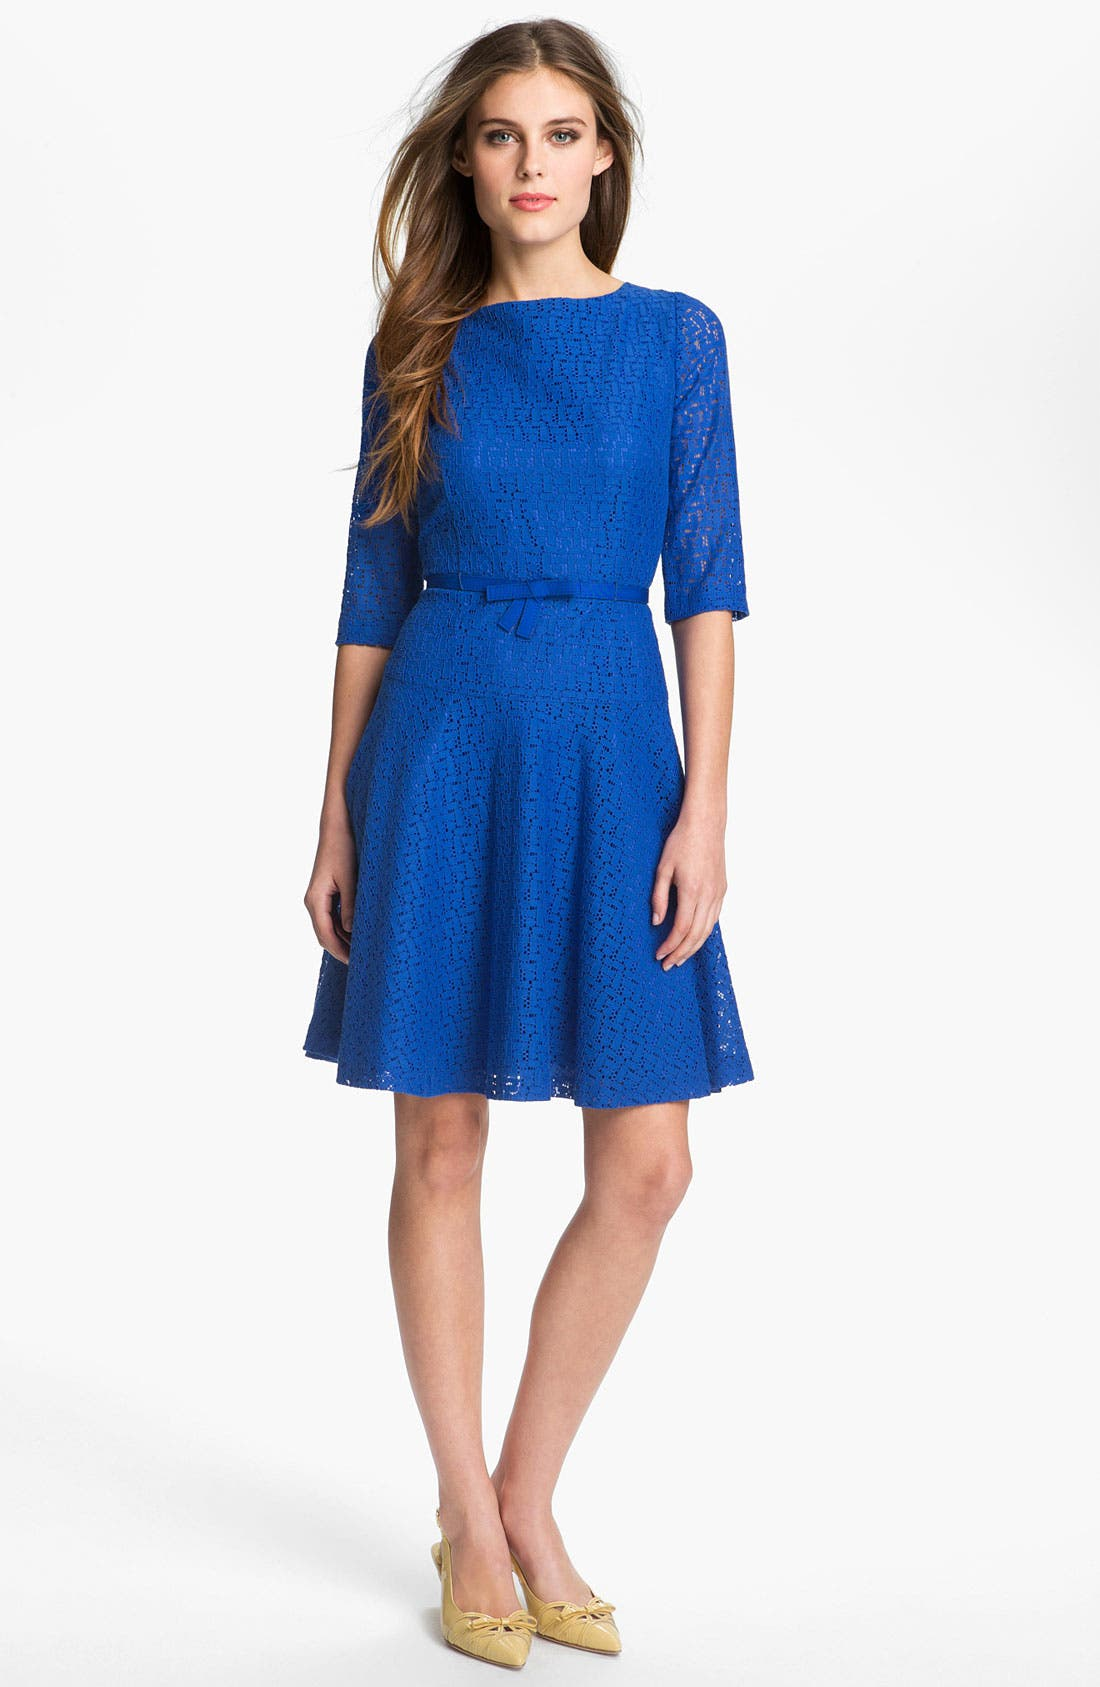 Alternate Image 1 Selected - Tahari Belted Lace Fit & Flare Dress